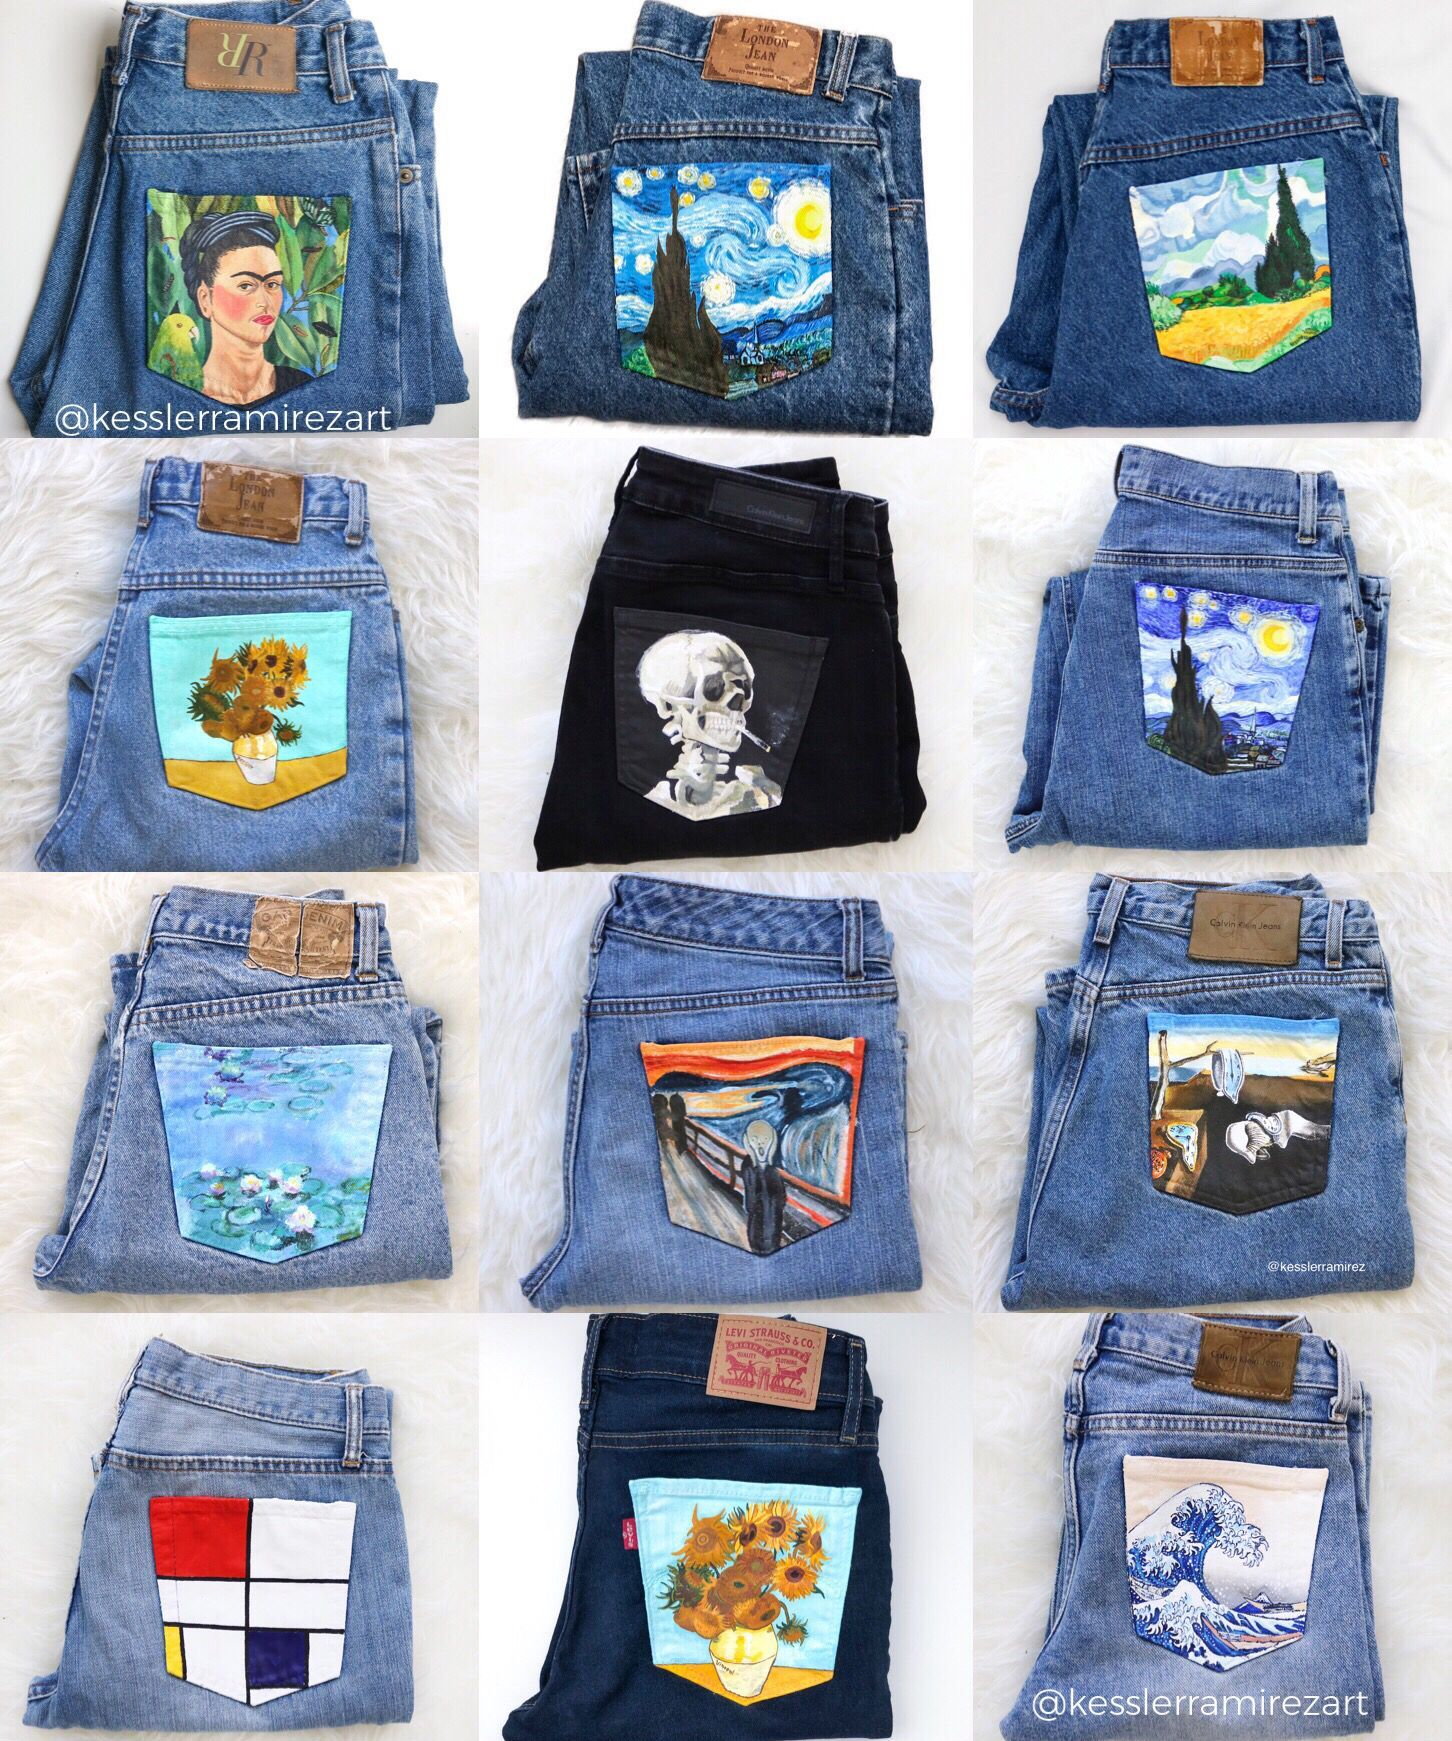 Collection of painted jeans by Kessler Ramirez #wearableart Painted jean pockets with artworks by Vincent Van Gogh, Claude Monet, Hokusai, Edward Munch, Piet Mondrian, and Salvador Dali. The Starry Night, Nympheas, Sunflowers, The Great Wave, Skull of a Skeleton with a Cigarette, and more. Painted fabric, fabric art, painted denim, painted jeans, fashion, art fashion, wearable art, painted pocket, denim, vintage jeans, outfit inspo, summer fashion, painted jeans diy. Kessler Ramirez Art.